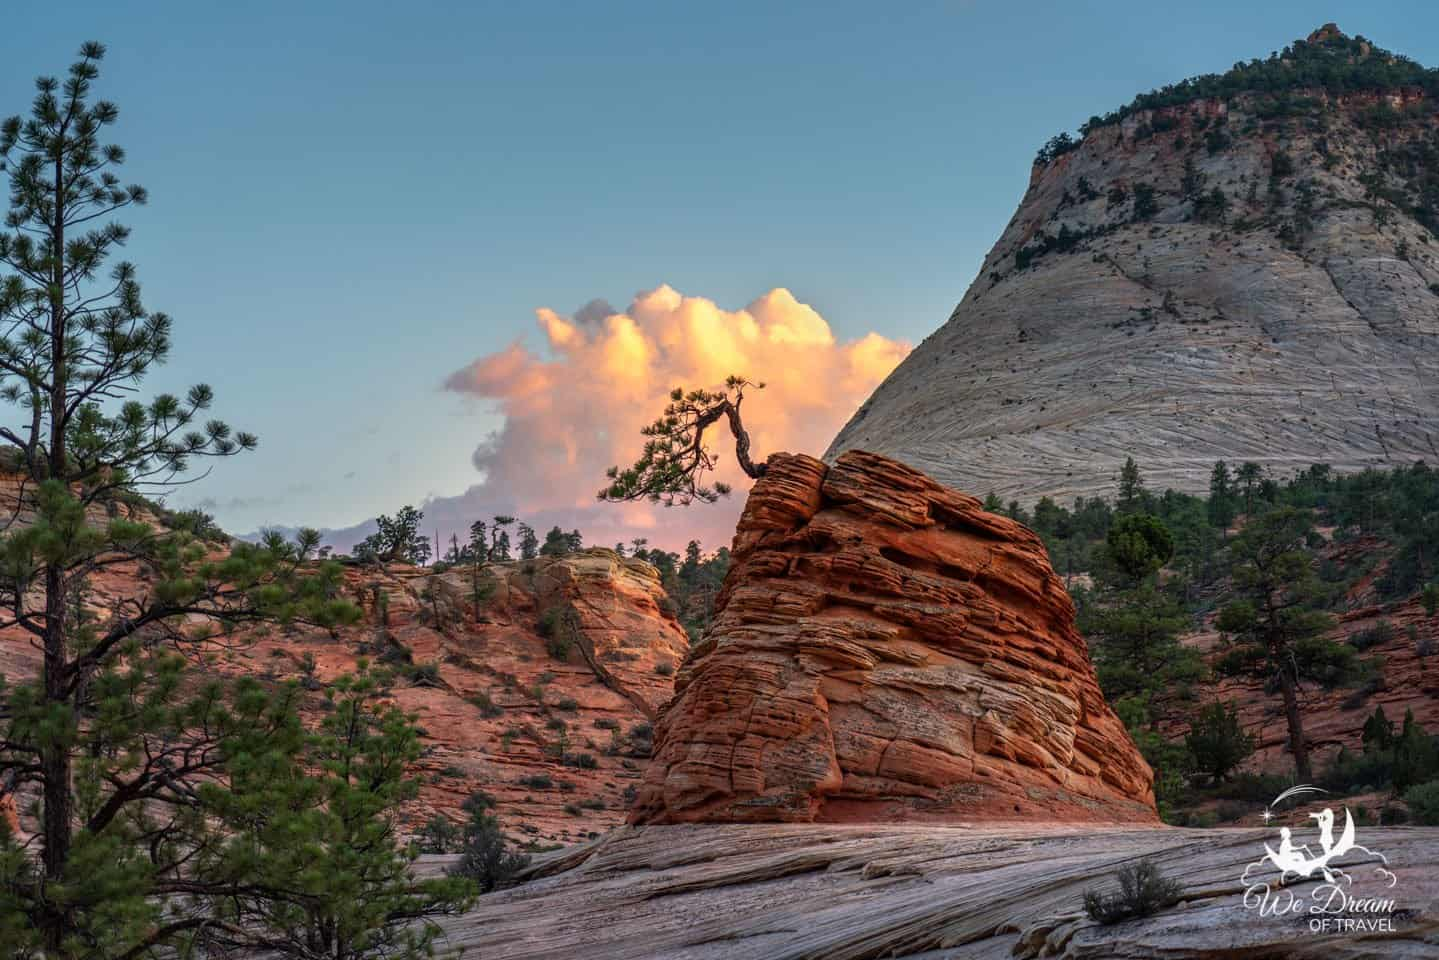 The Little Lonely Tree is a hidden gem on the journey from Bryce Canyon to Zion